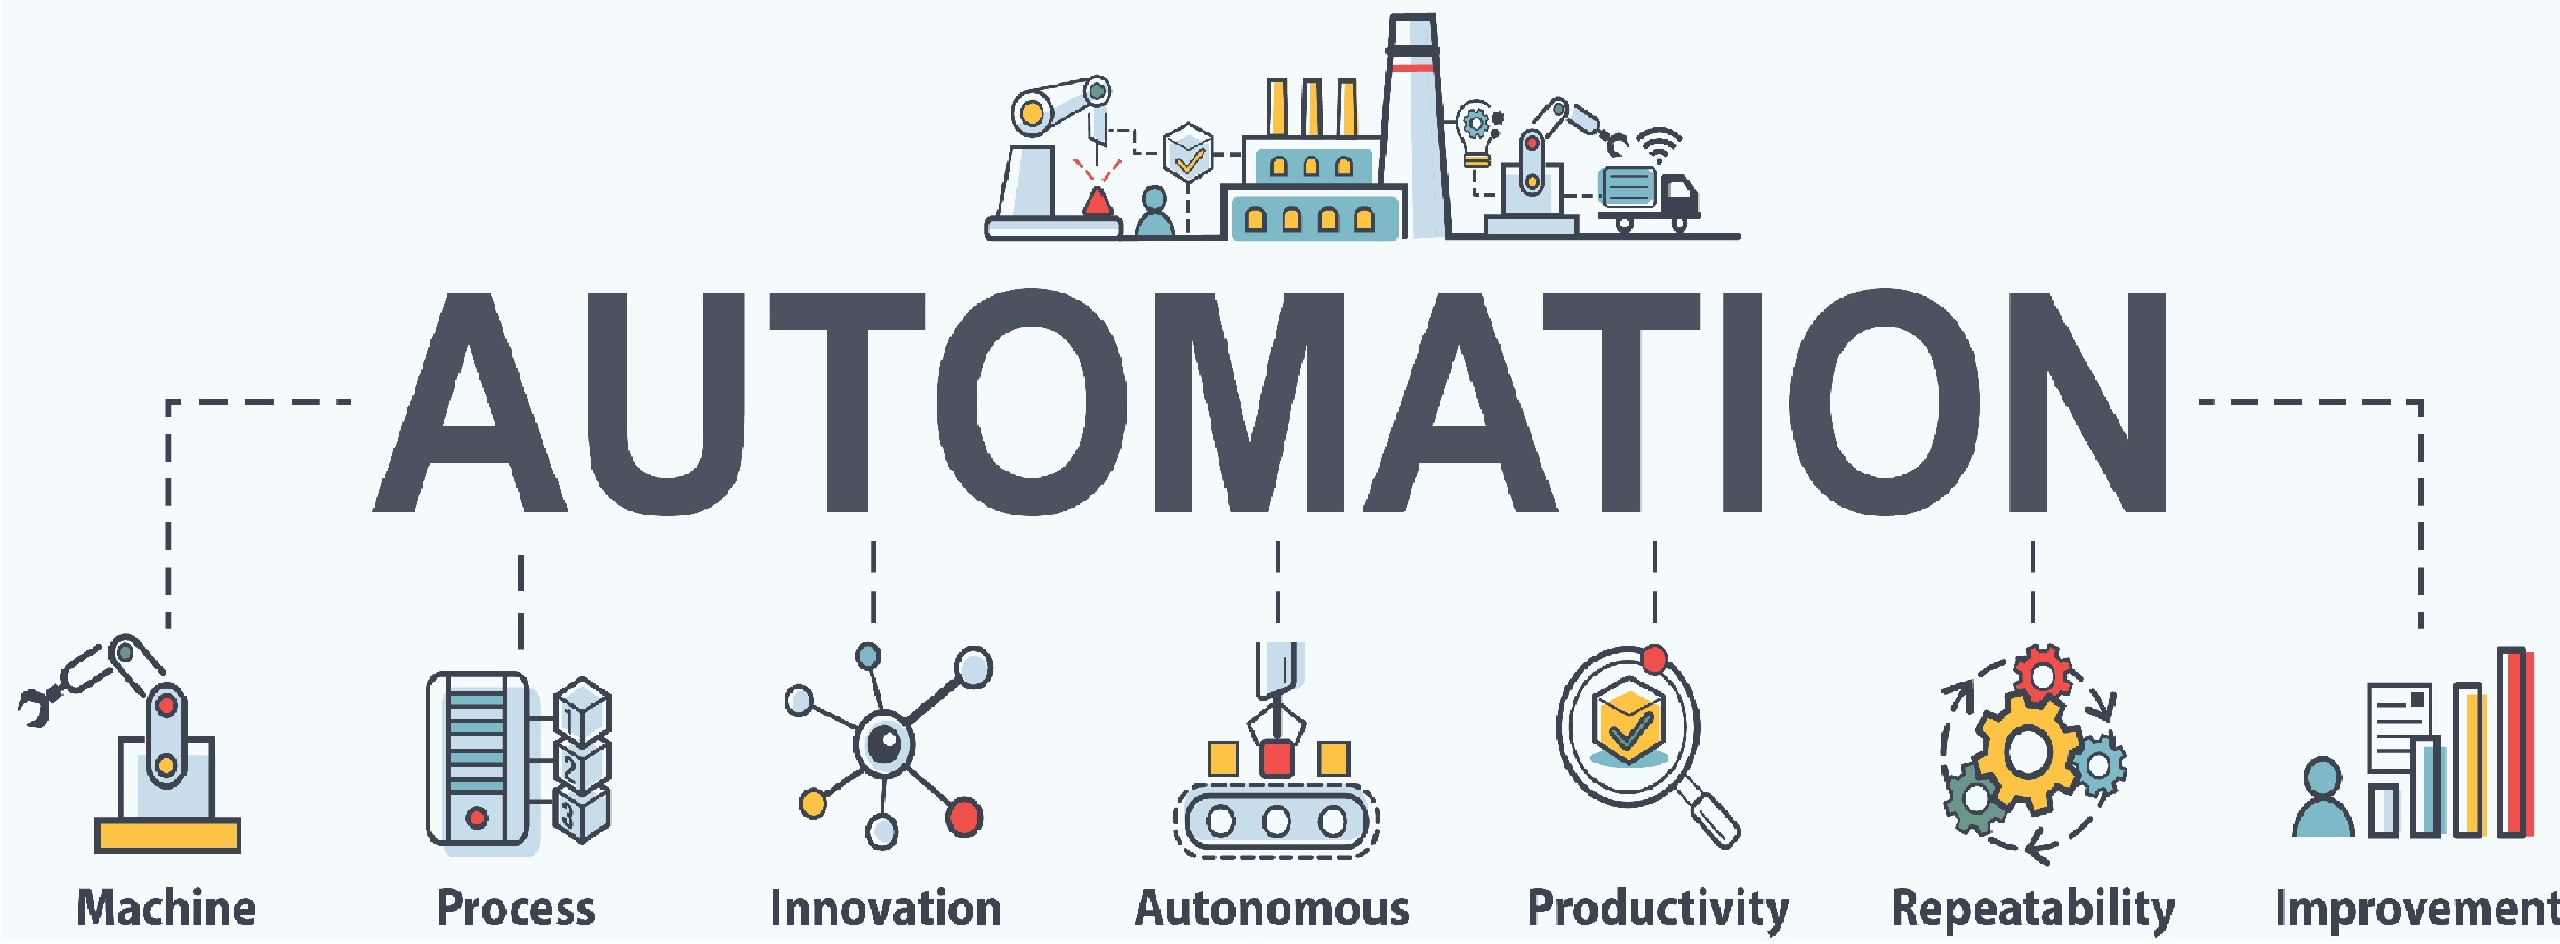 Technologies in Automation Industry